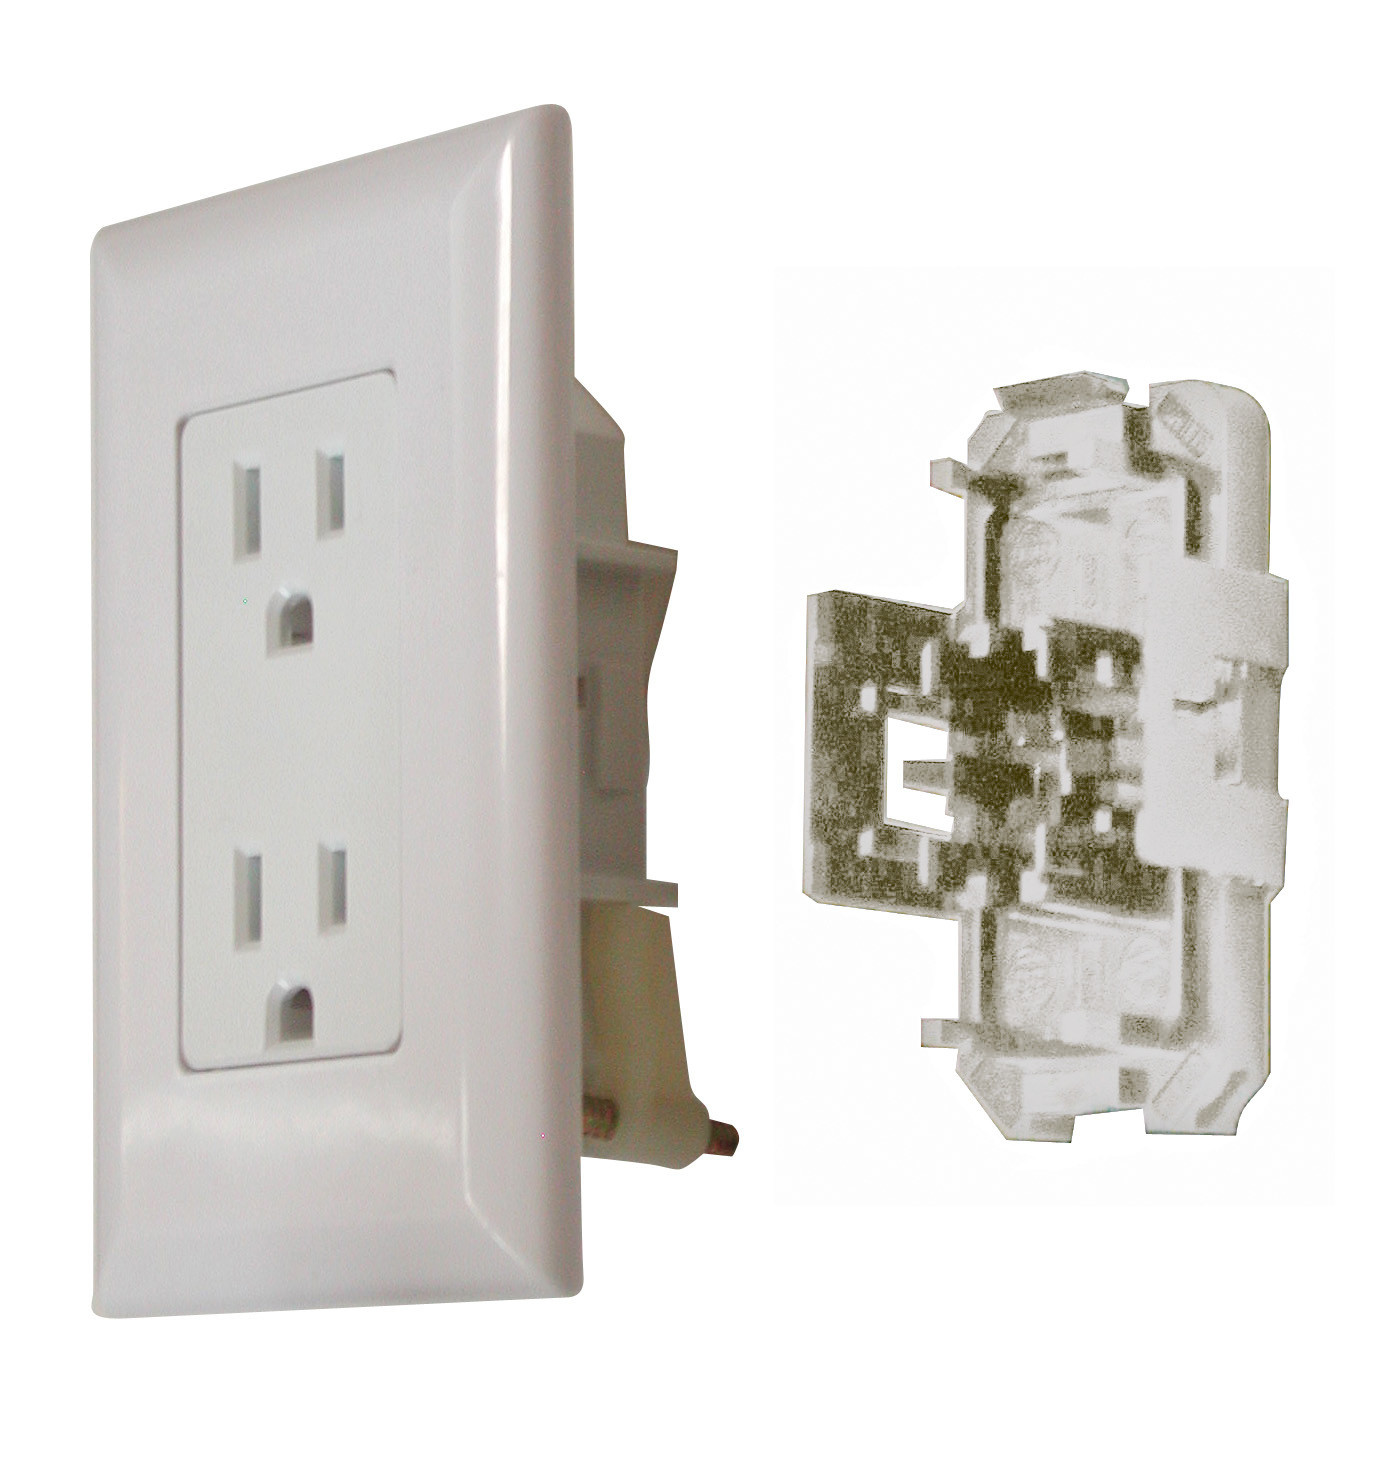 20 Amp Decor Receptacle with Cover - White